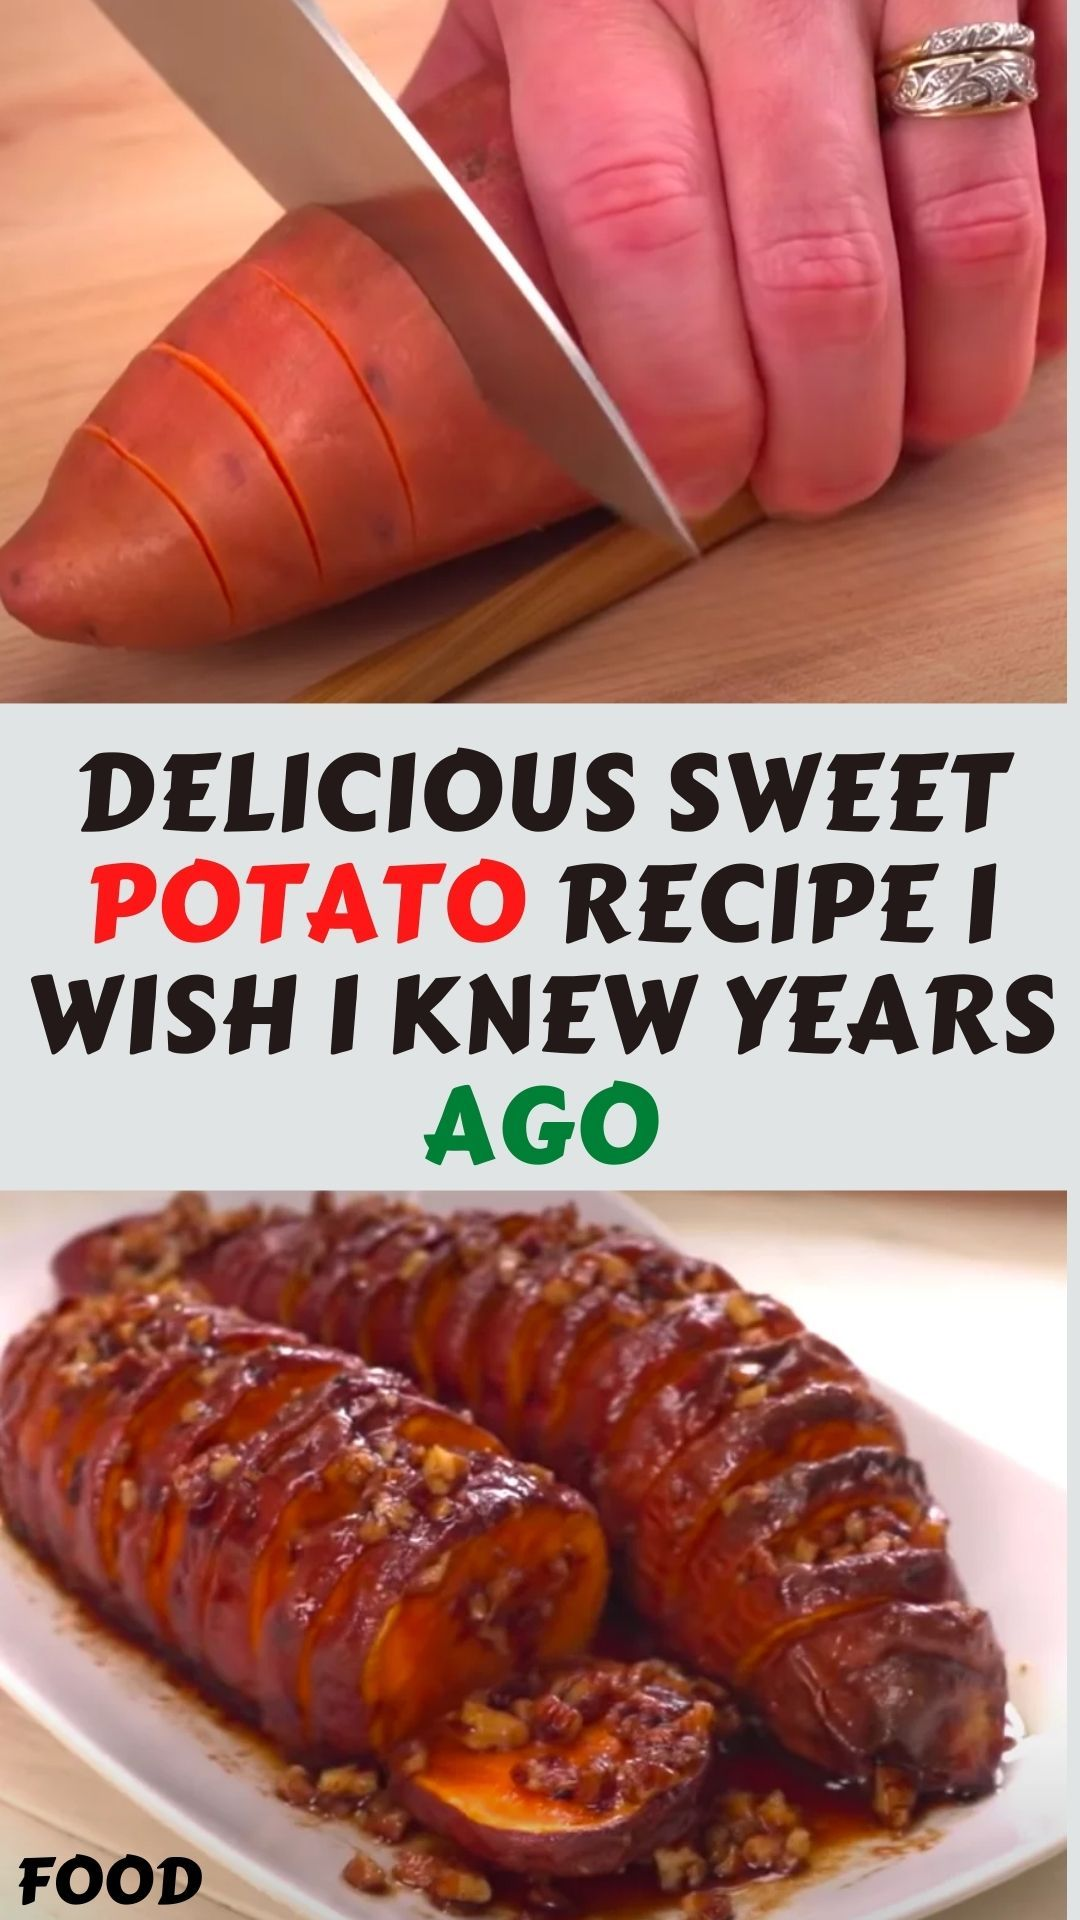 Delicious Sweet Potato Recipe I Wish I Knew Years